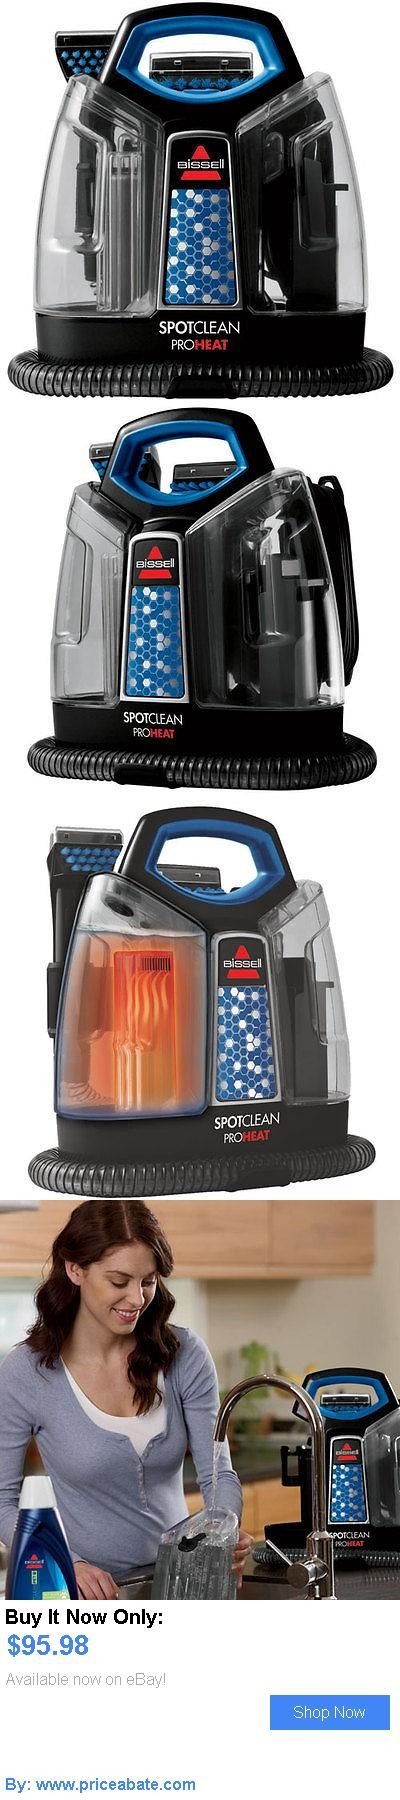 household items: Bissell Spotclean Proheat Portable Carpet Cleaner 5207 Handheld Stairs Auto New! BUY IT NOW ONLY: $95.98 #priceabatehouseholditems OR #priceabate